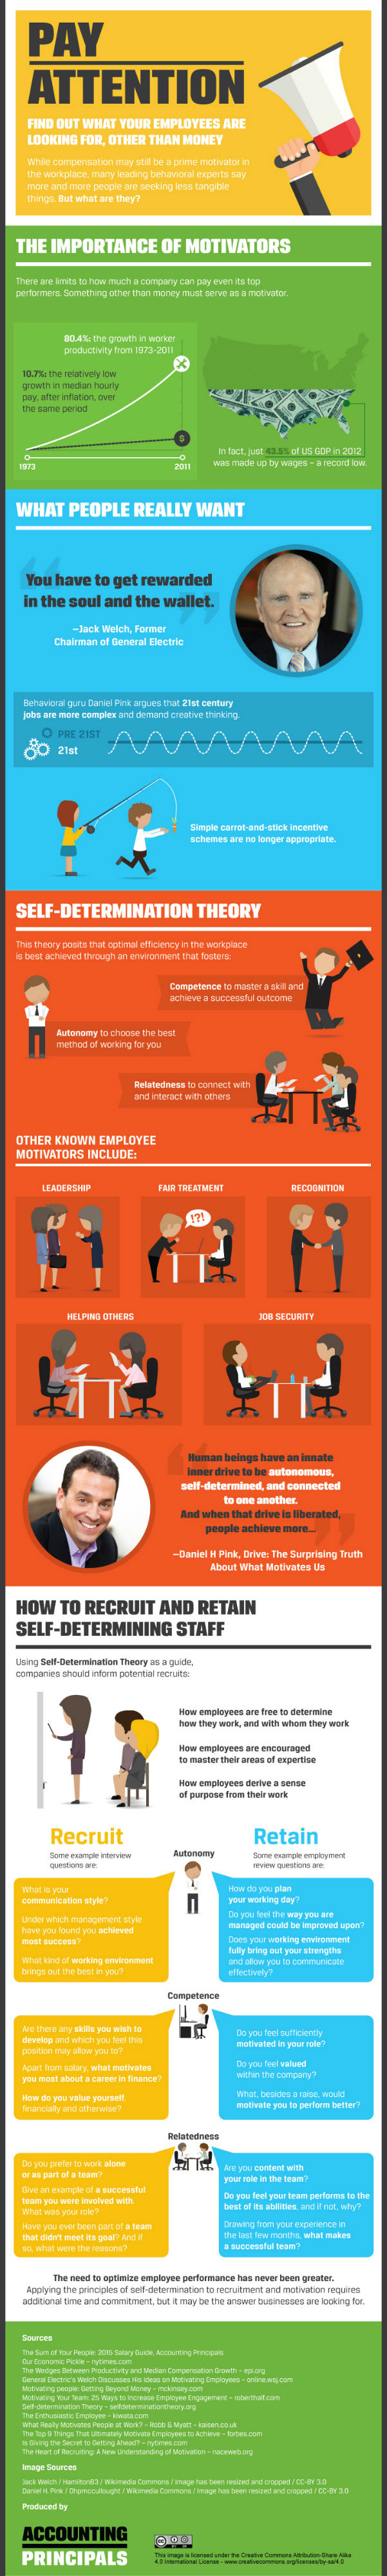 What Your Employees Are Looking For Other Than Money? [Infographic]